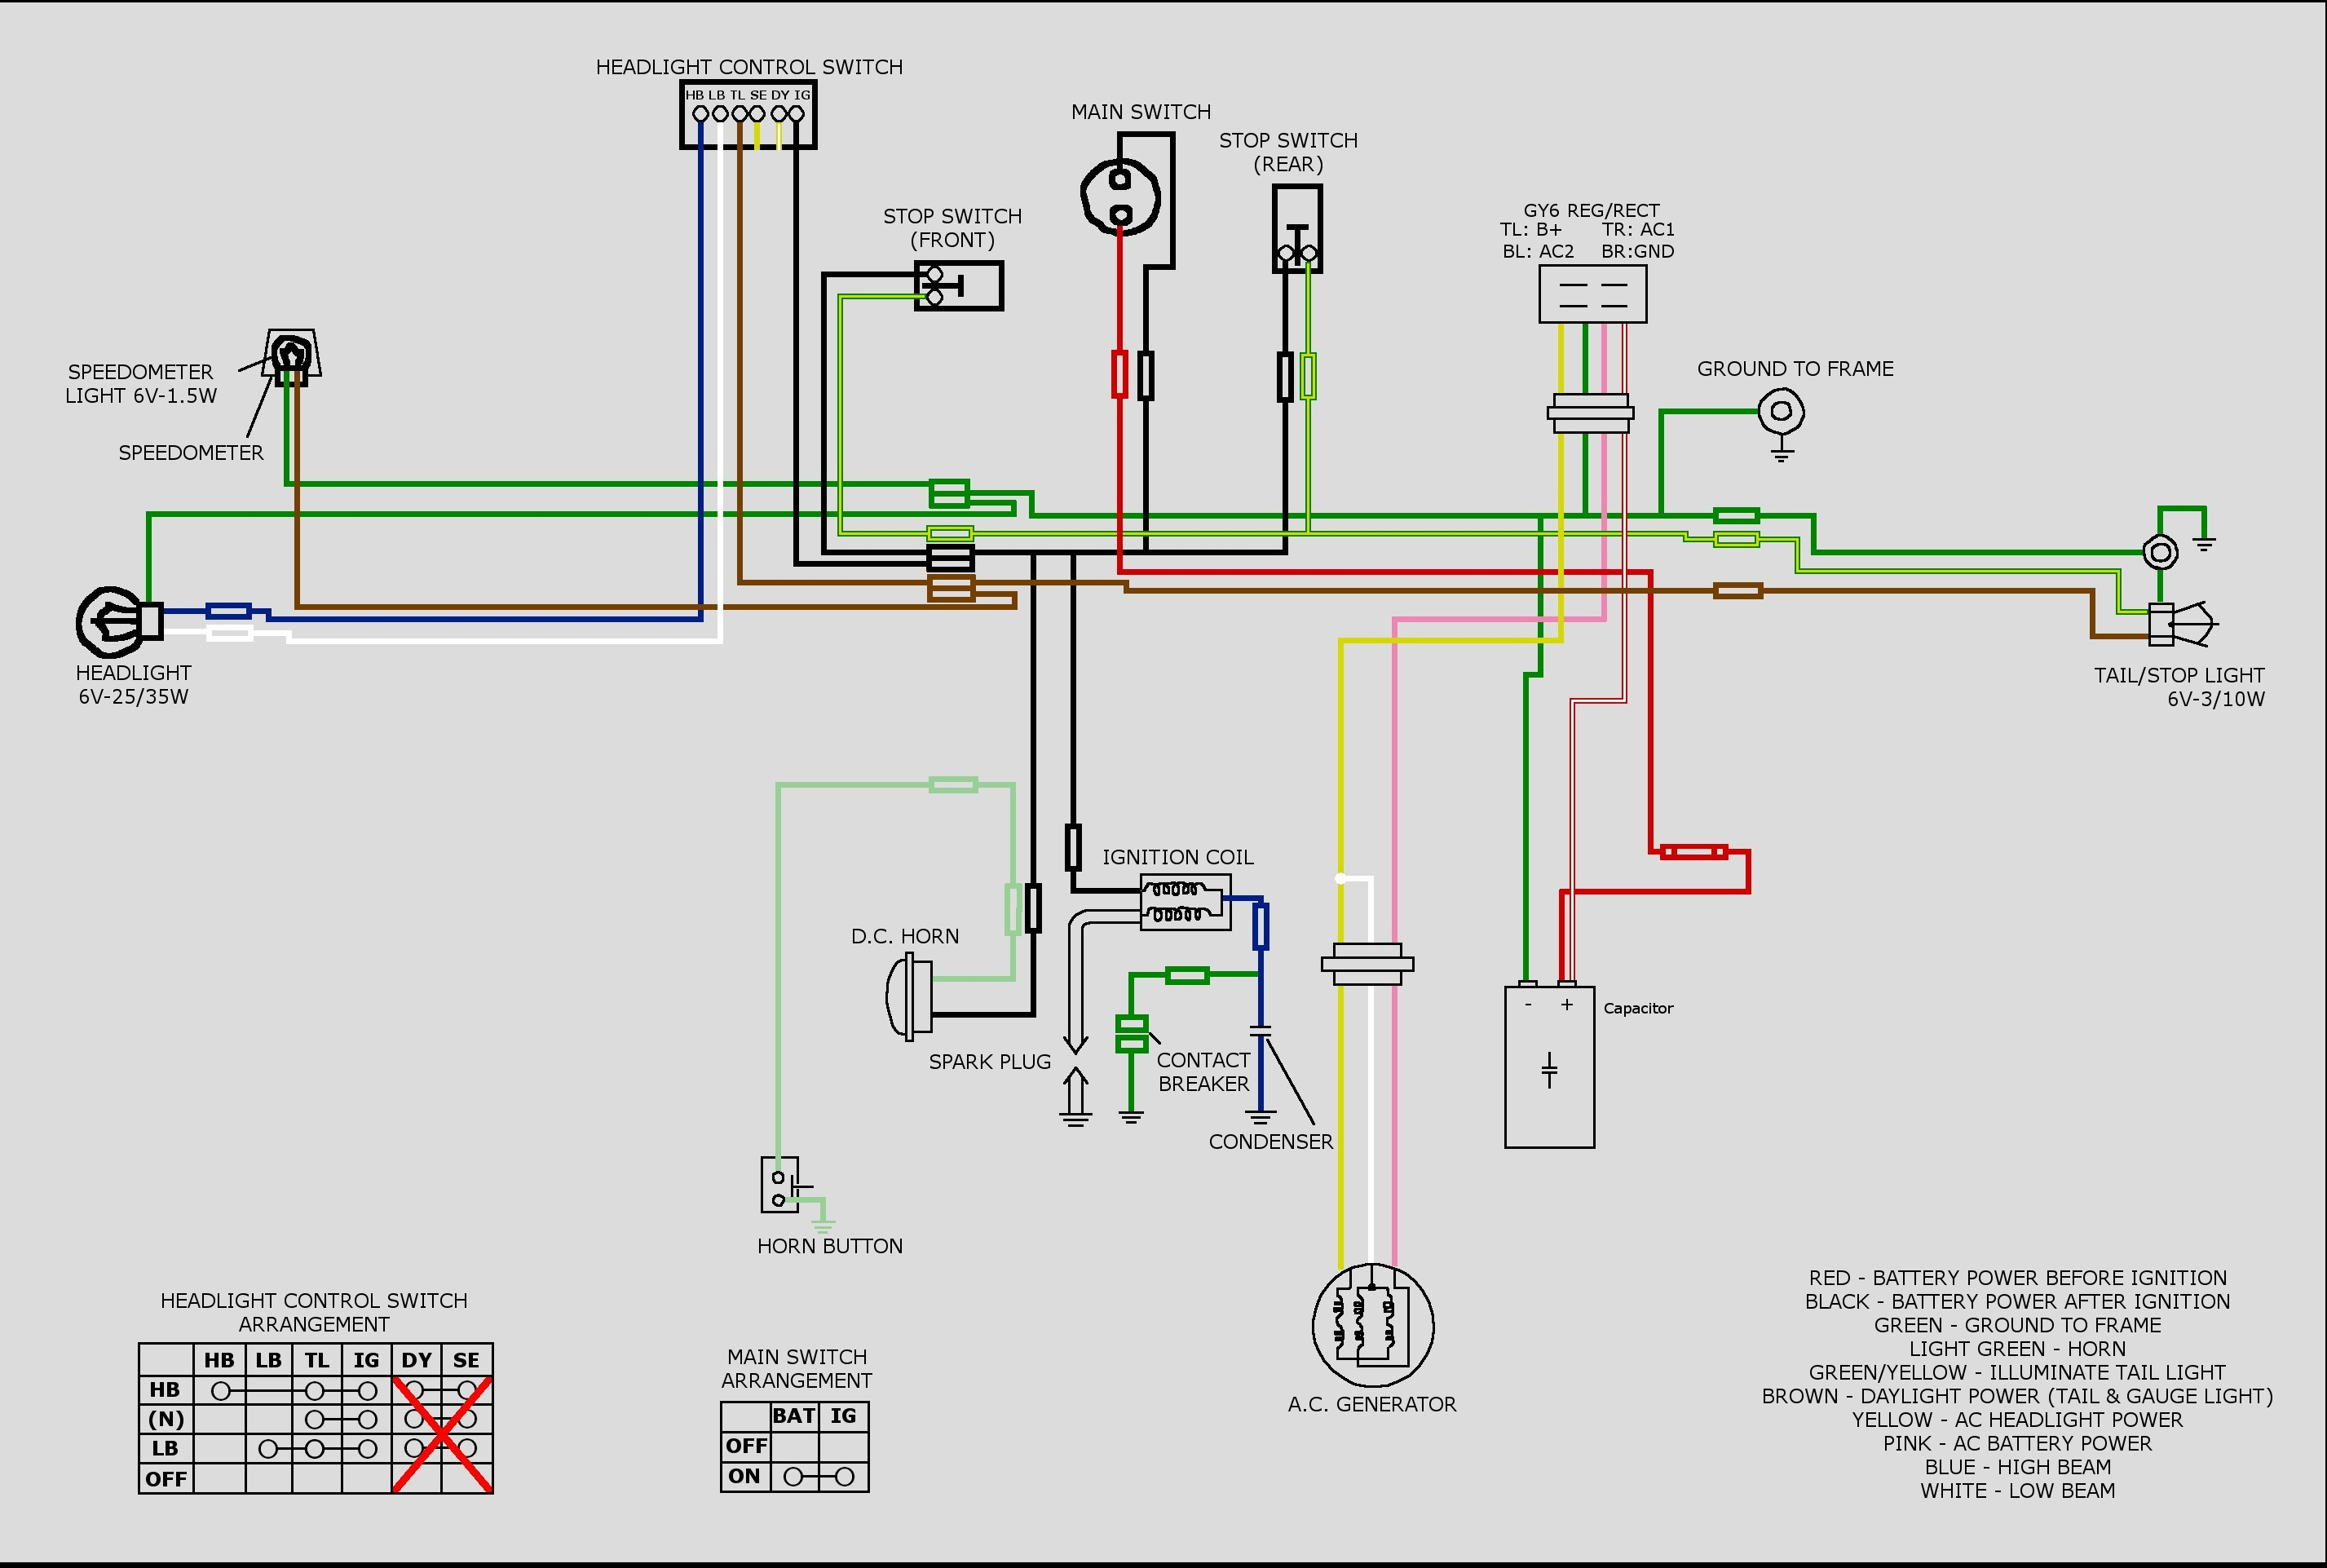 Sunl Wire Diagram Magneto - Wiring Diagrams Interval Magneto Schematic Diagram on